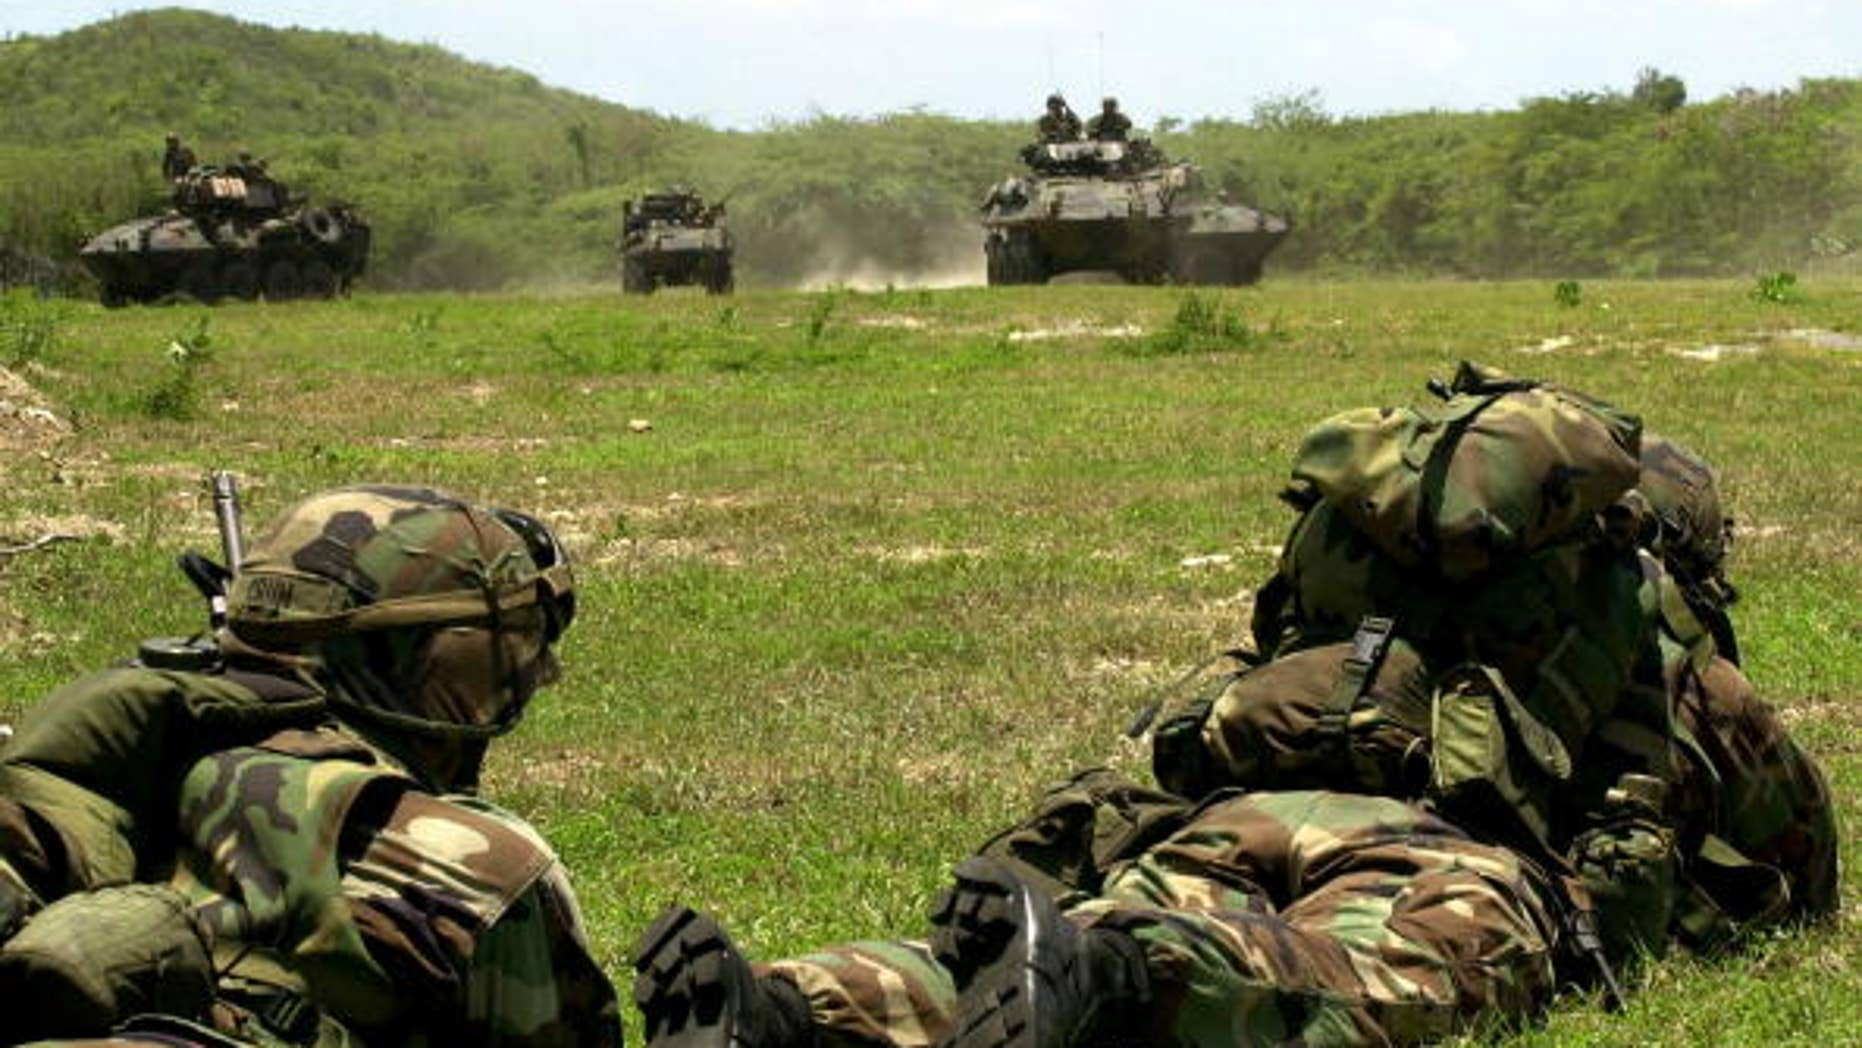 Us Marines Practice Assaulting An Enemy Position August 6, 2001 On The Puerto Rican Island Of Vieques. The Us Marine Corps Are Conducting A Training Exercise On The Island, Which Is Also The Site Of A Controversial Us Navy Bombing Range.